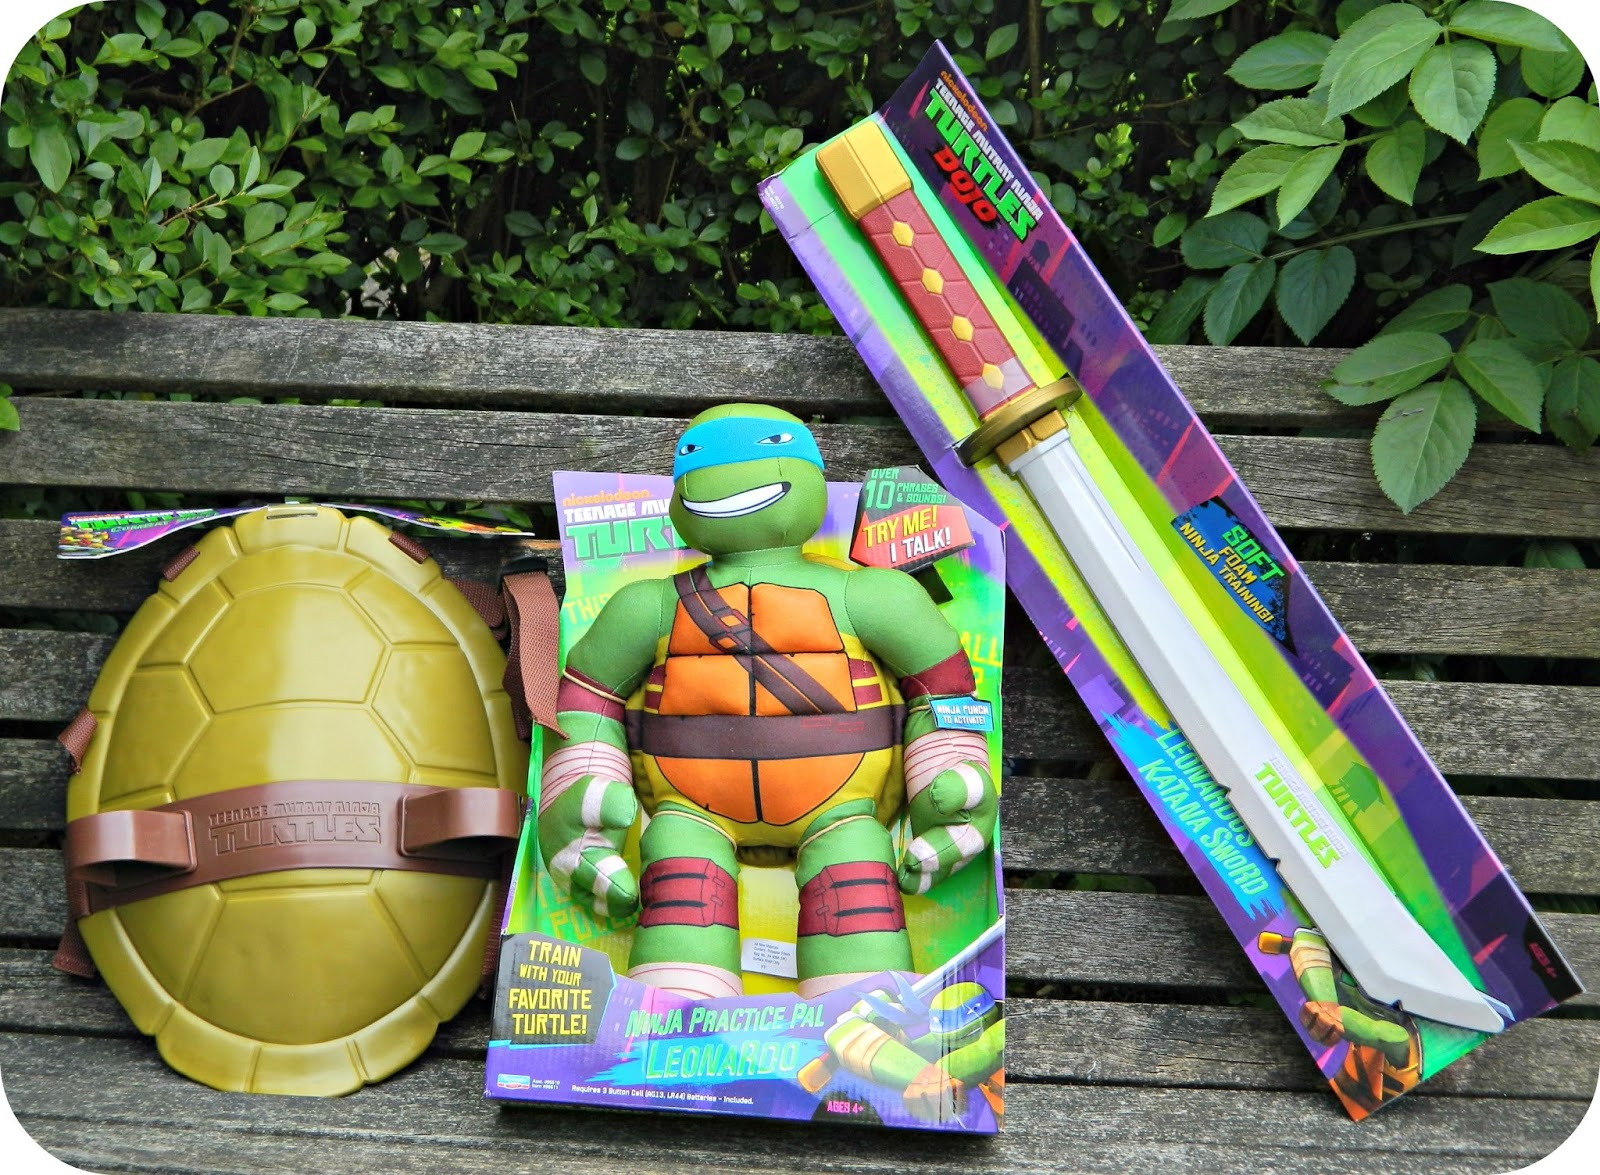 Practice Your Teenage Mutant Ninja Turtles Moves with Flair